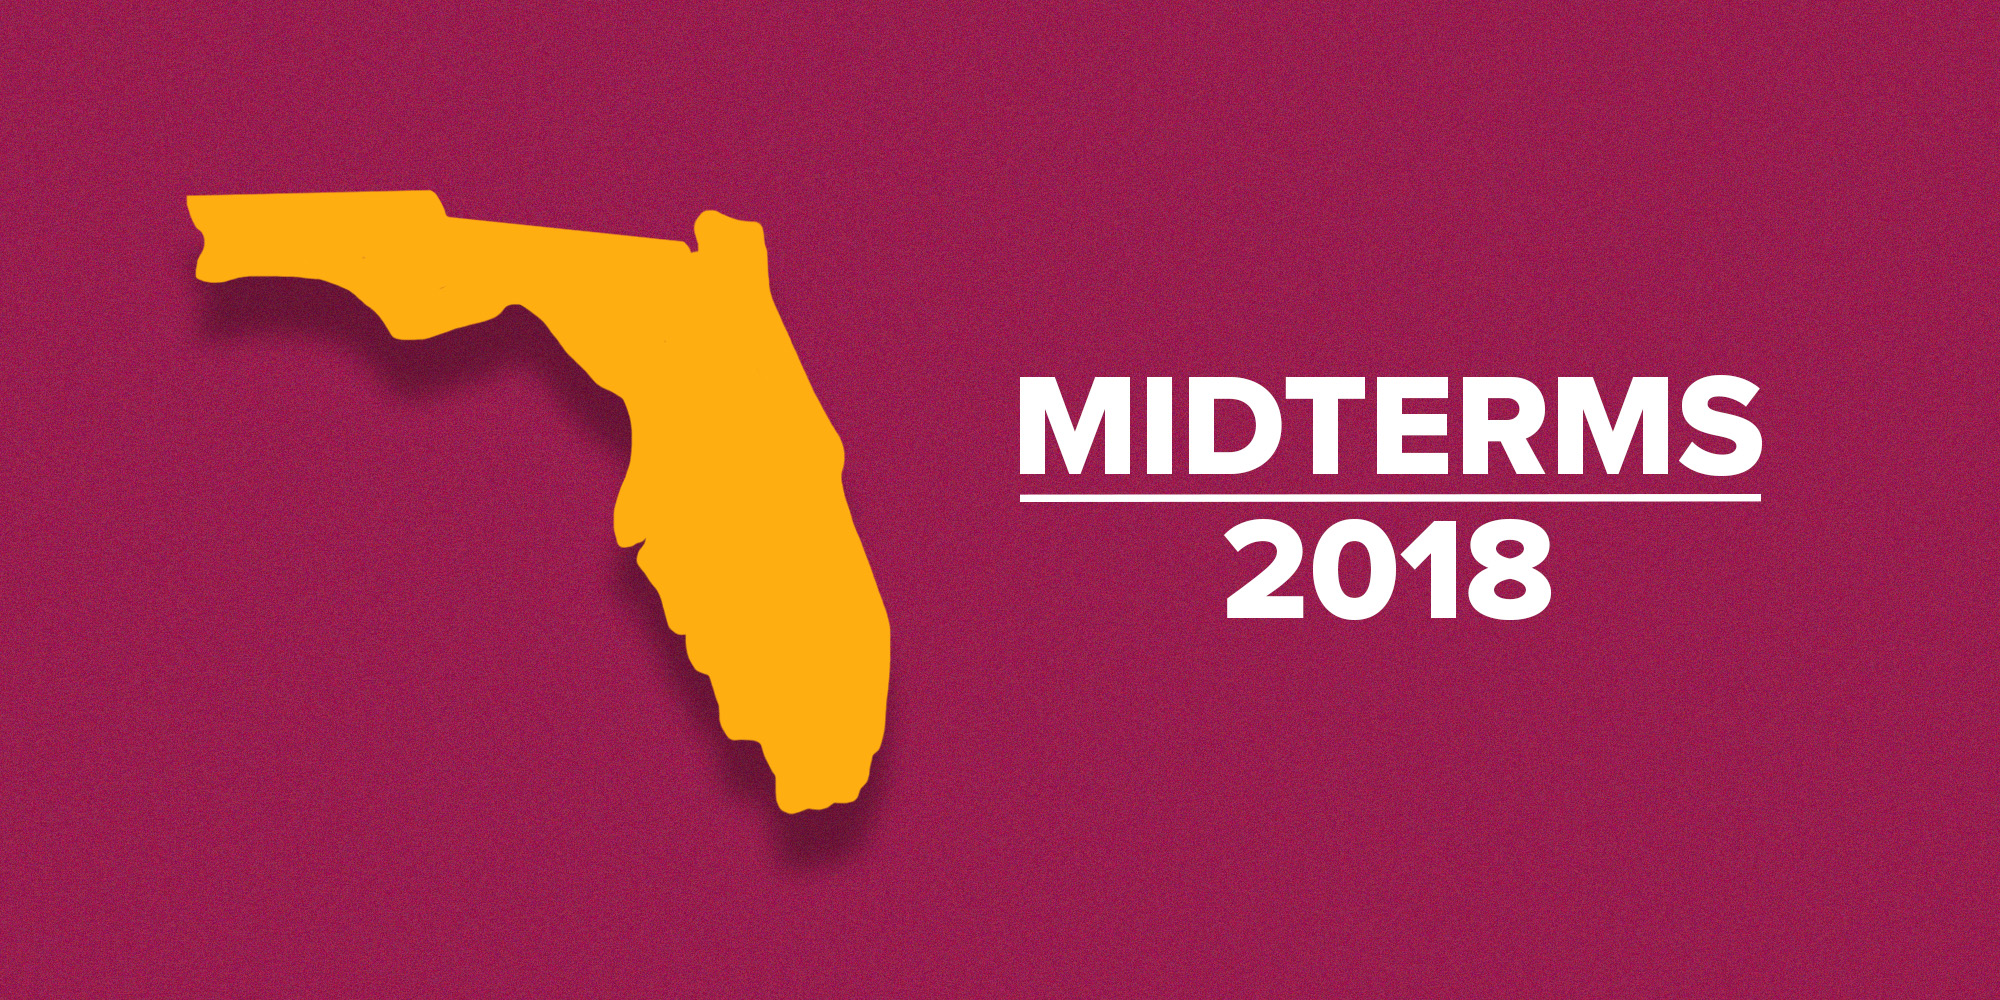 The Florida problem: recounts matter, but usually don't change results